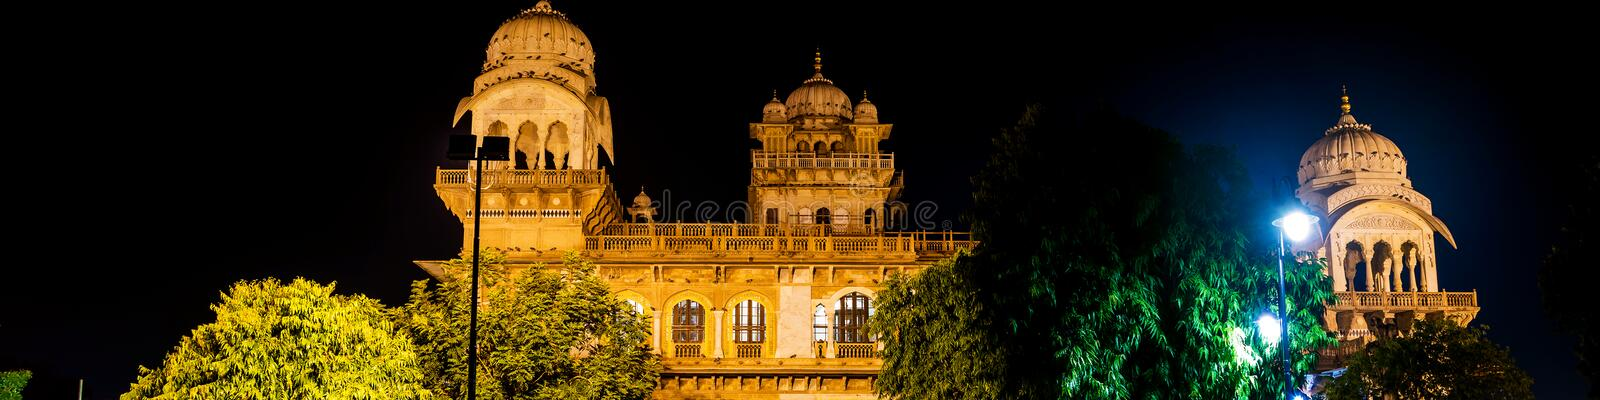 Illuminated Albert Hall Museum in Jaipur, India stock photo